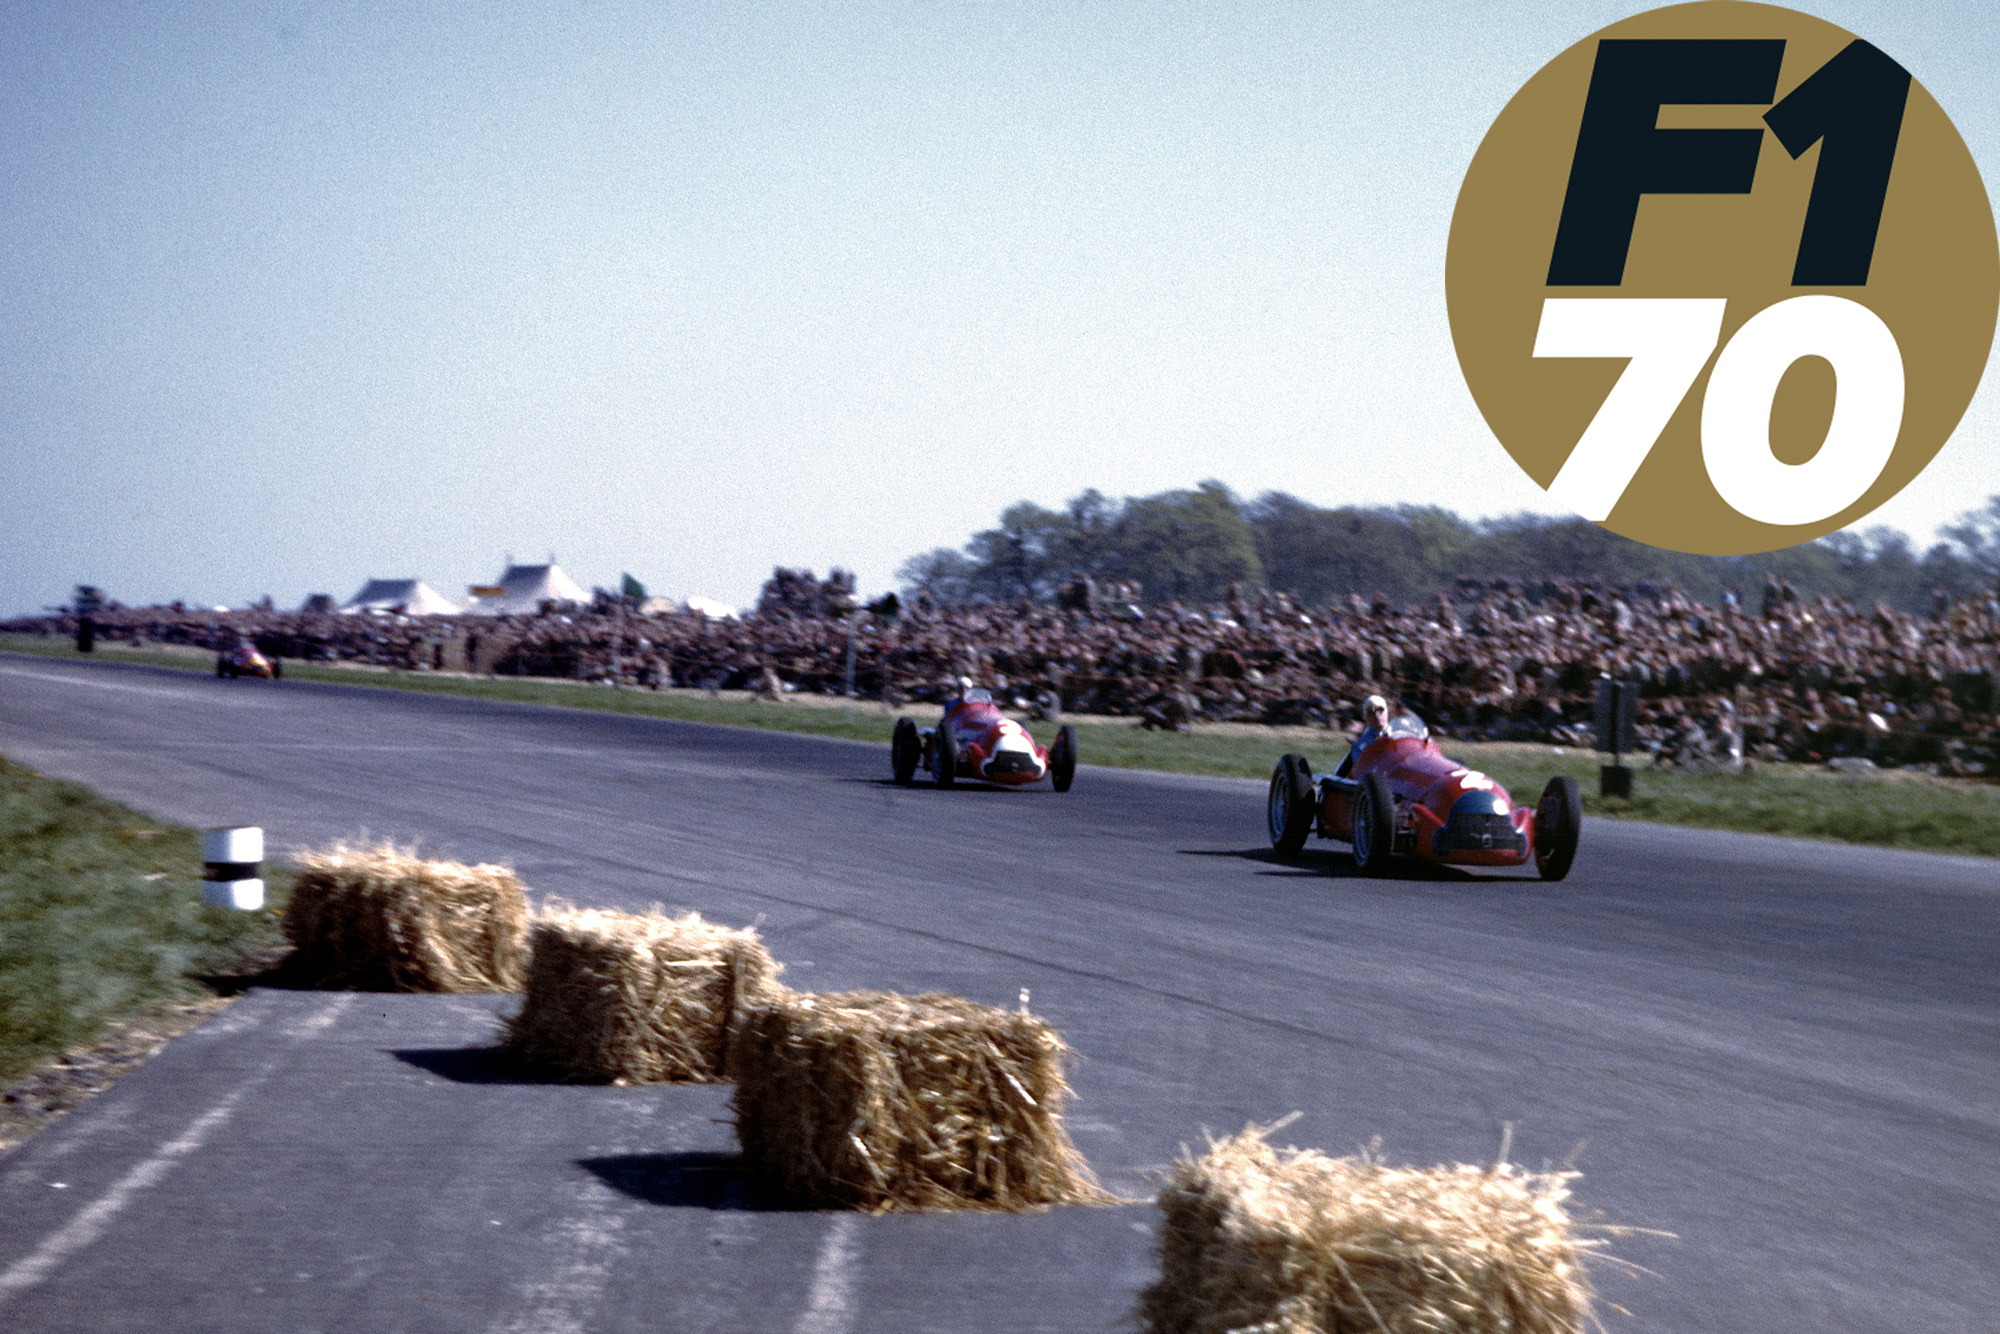 Silverstone celebrates 70 years since hosting the first F1 championship race